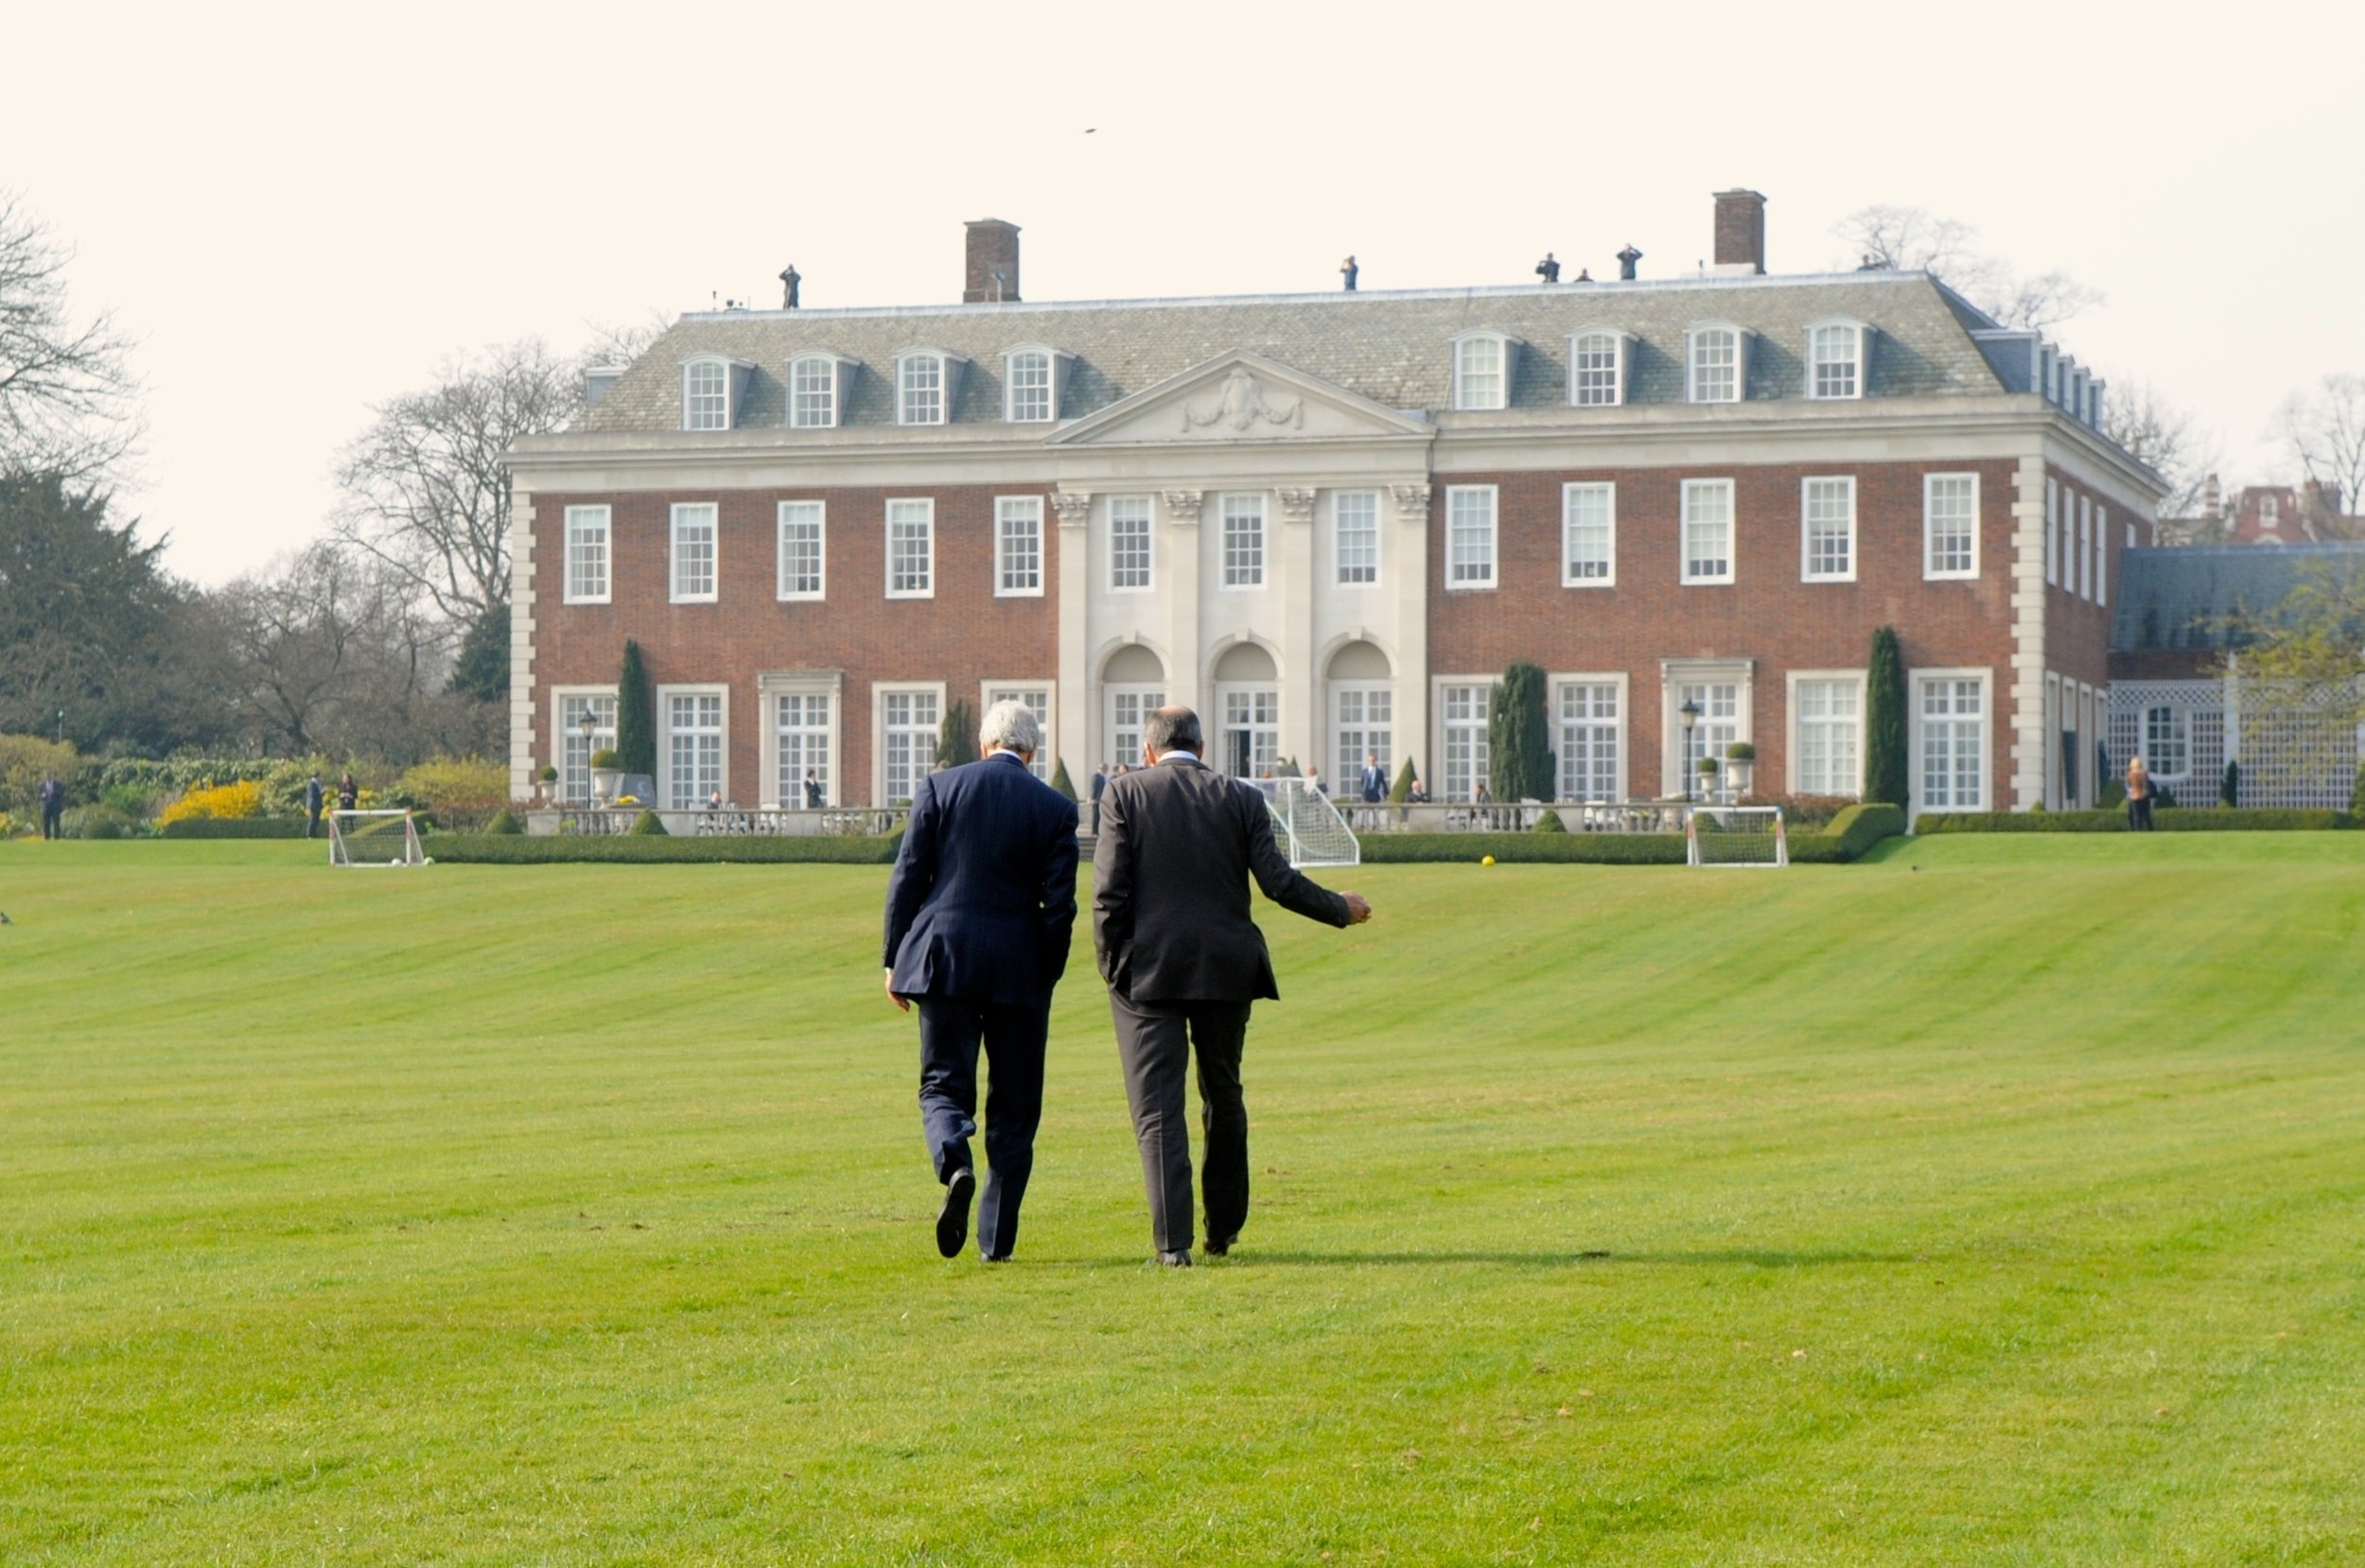 The two diplomats take a walk on the back lawn at Winfield House - the second-largest private yard in London, after the one at Buckingham Palace.